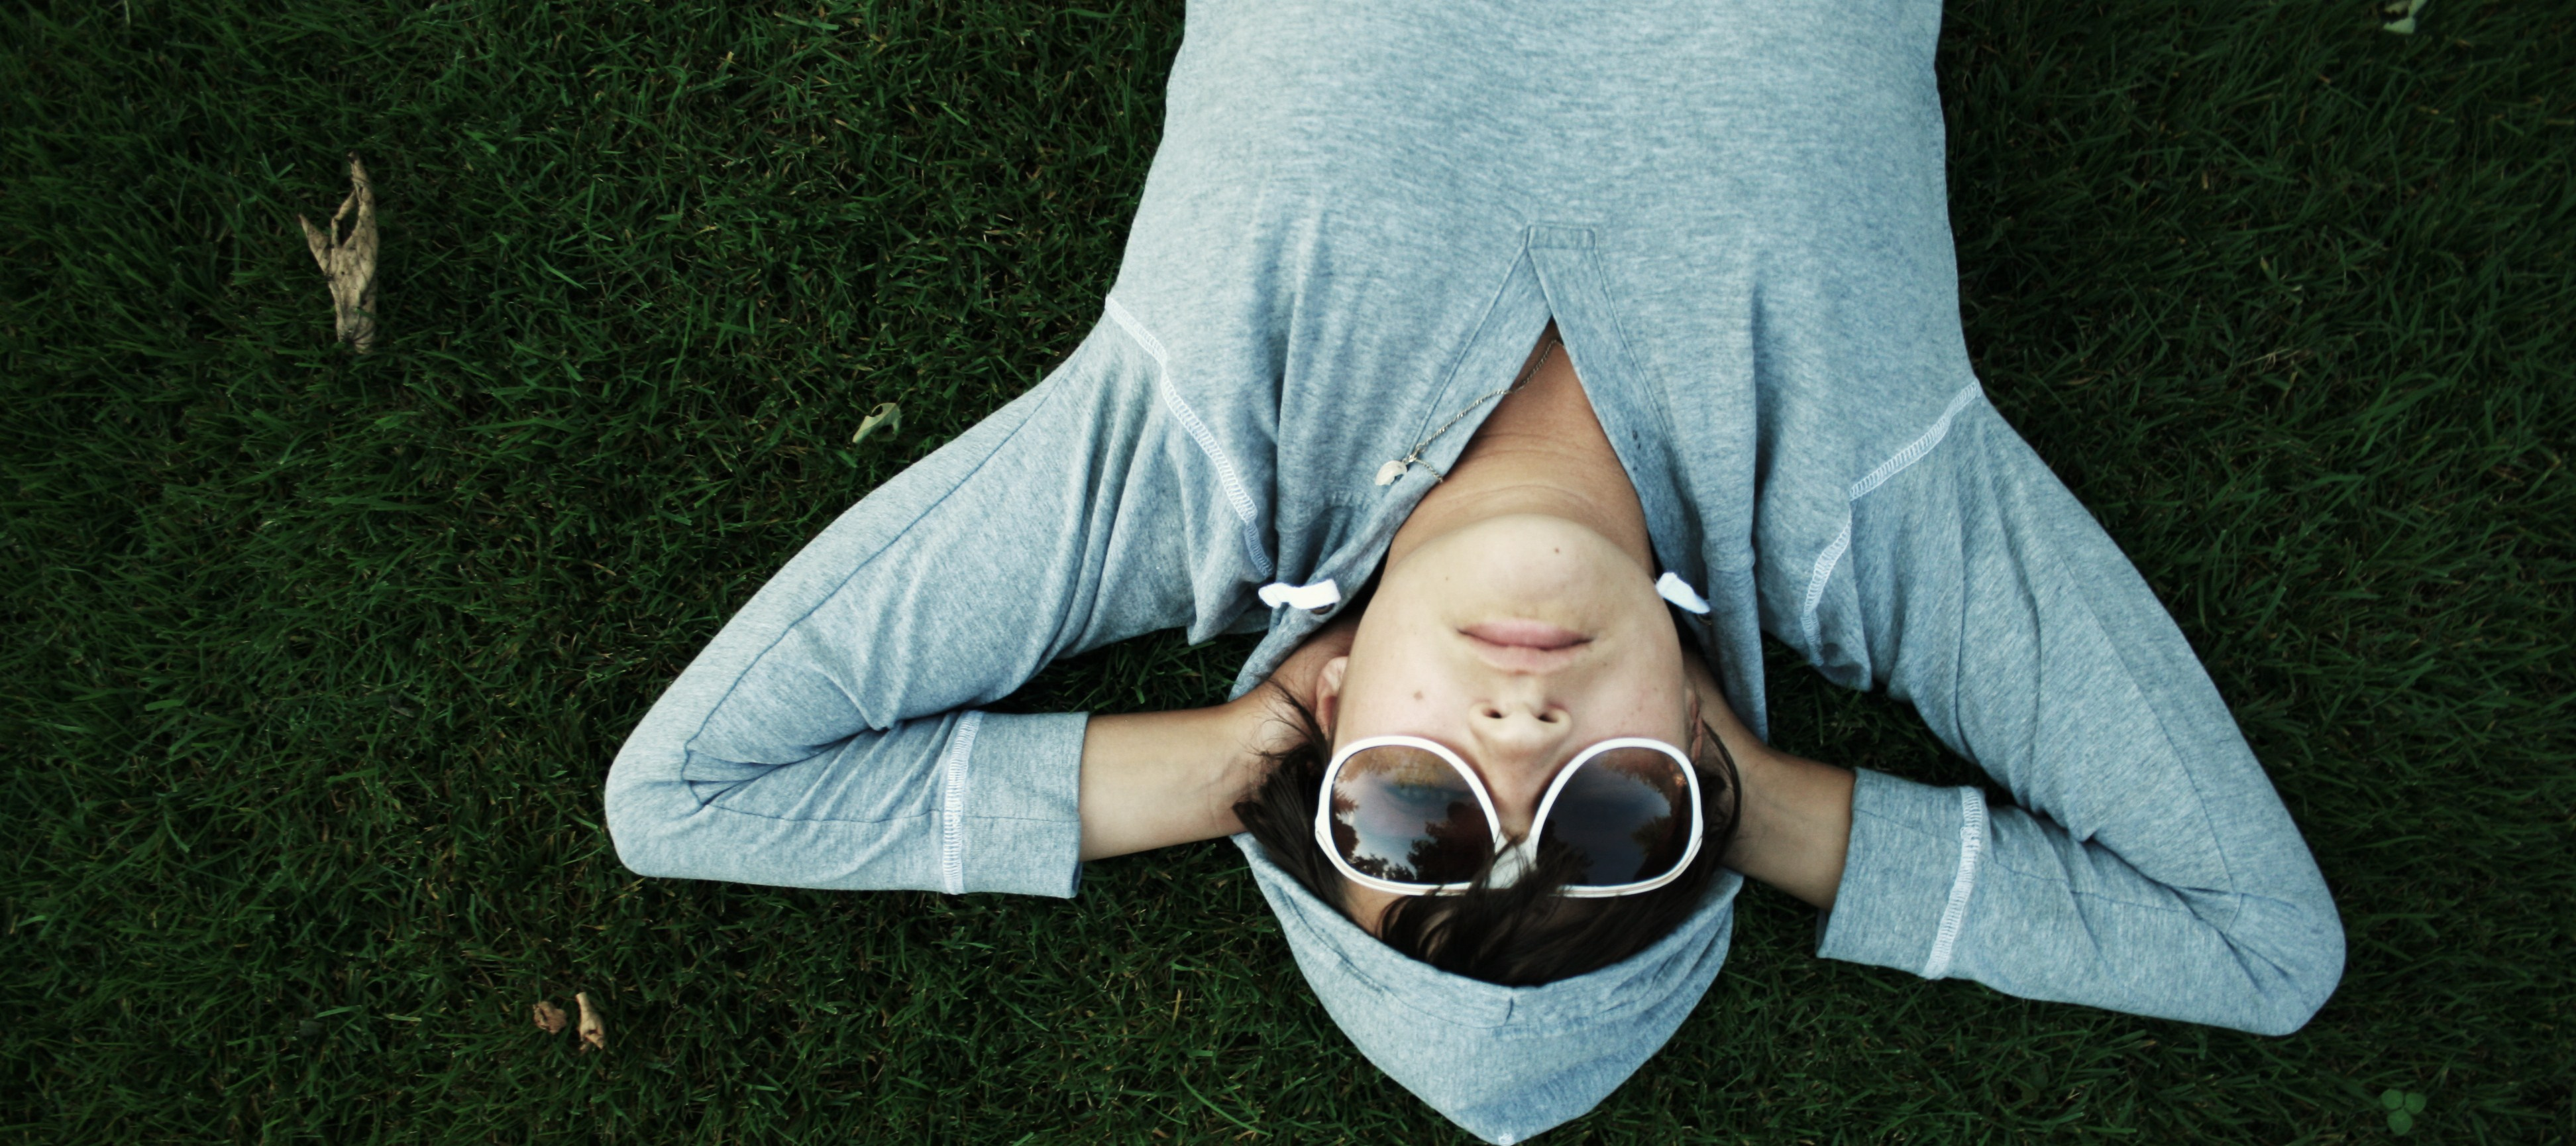 Man lying down on grass wearing grey hoodie and sunglasses